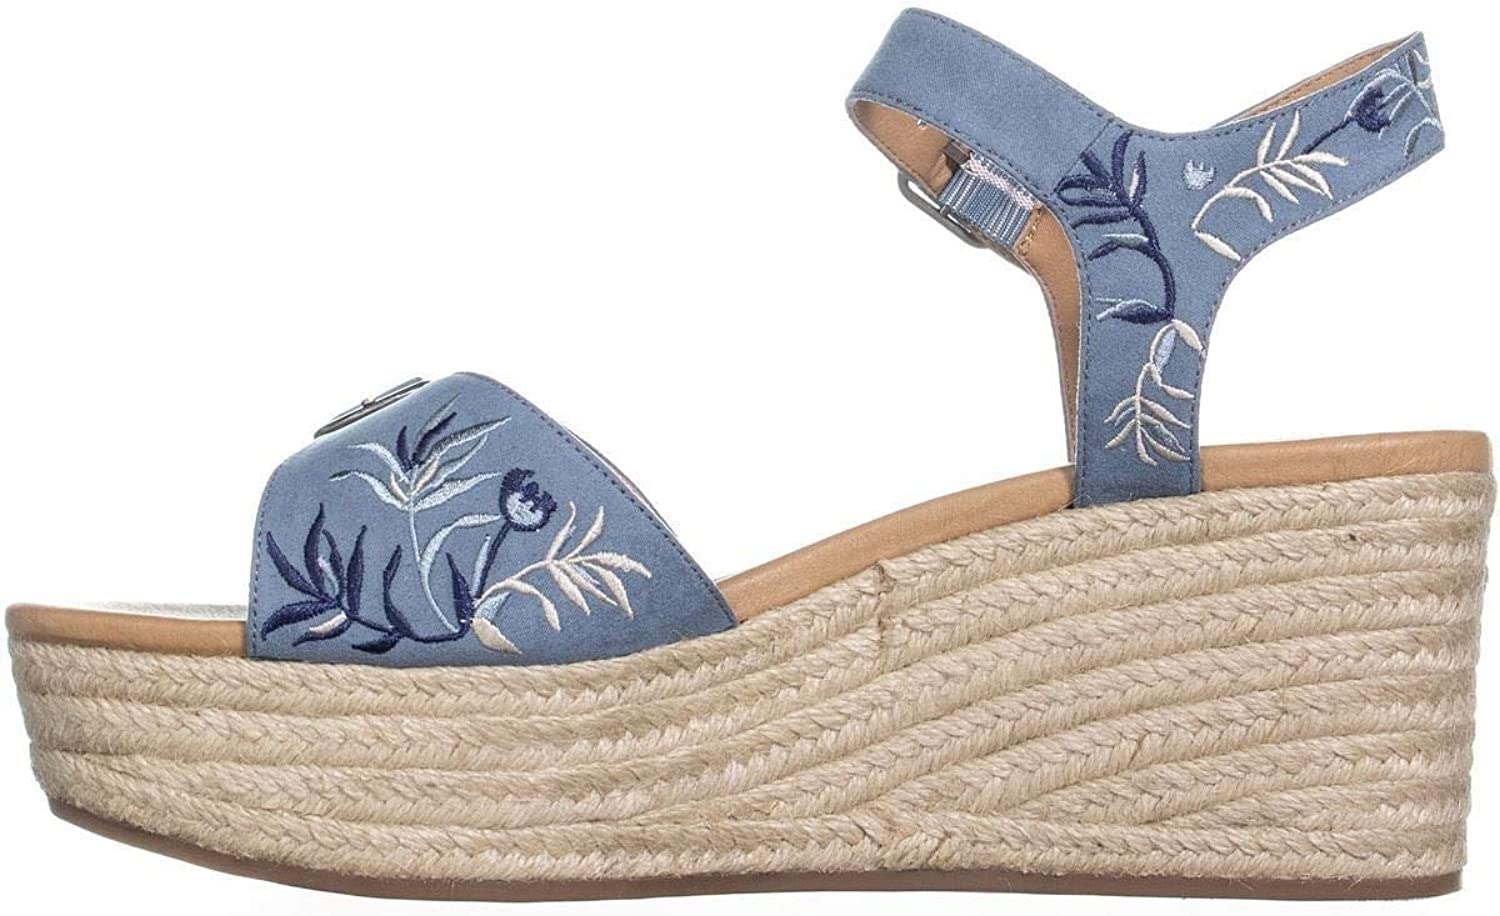 Lucky Brand Women's Naveah2 Espadrille Wedge Sandal Pink